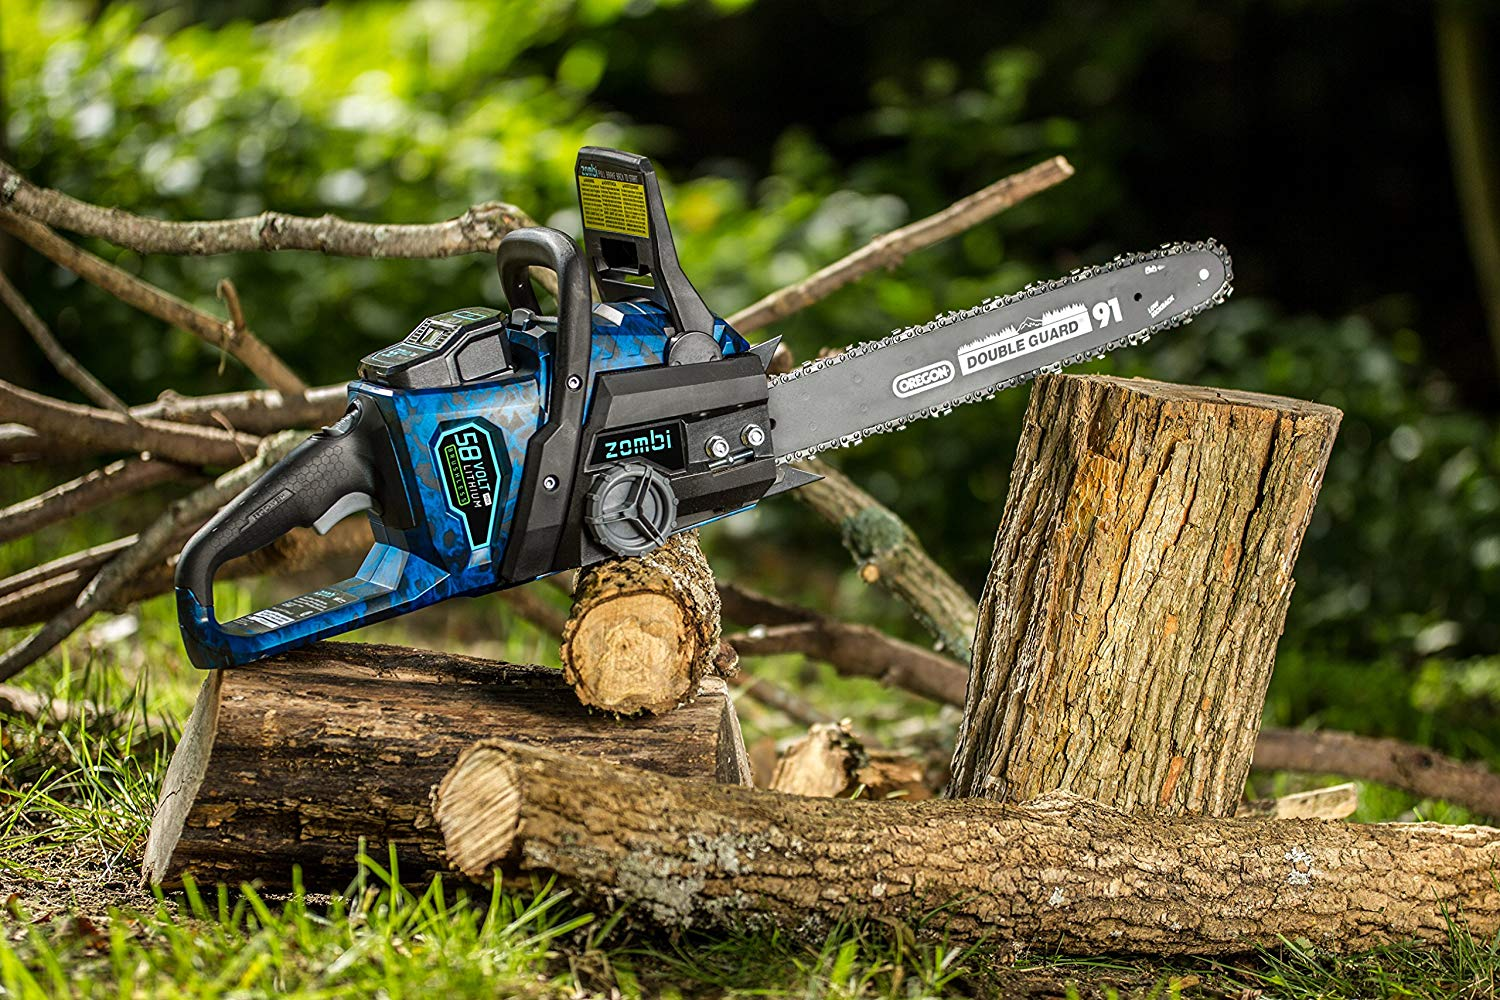 Zombi ZCS5817 Cordless Electric Chainsaw